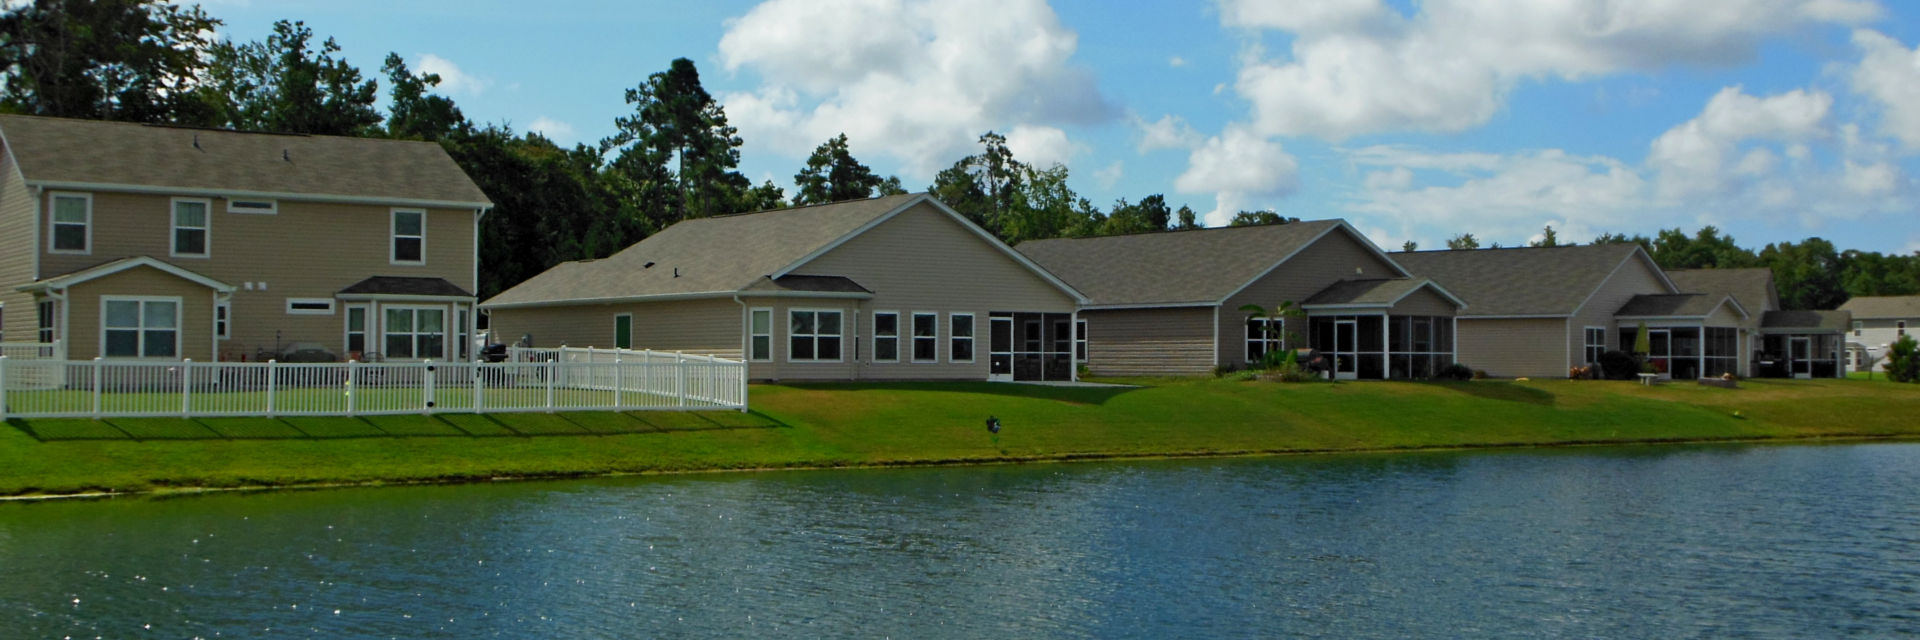 Homes On The Lake in Turtle Cove Myrtle Beach SC